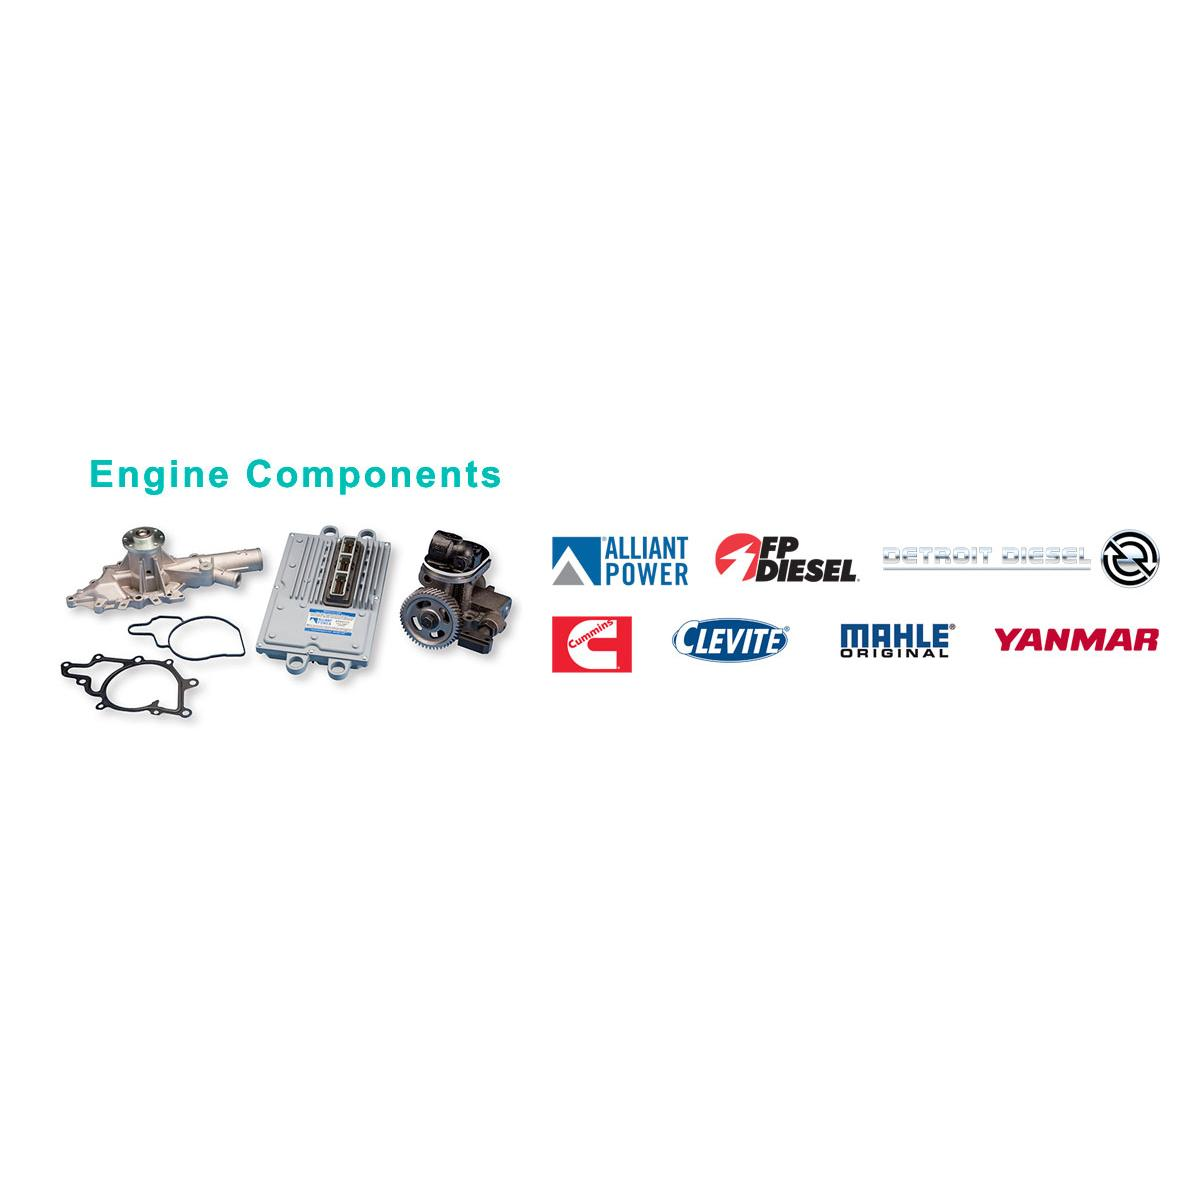 Engine Components Diesel Parts Slide